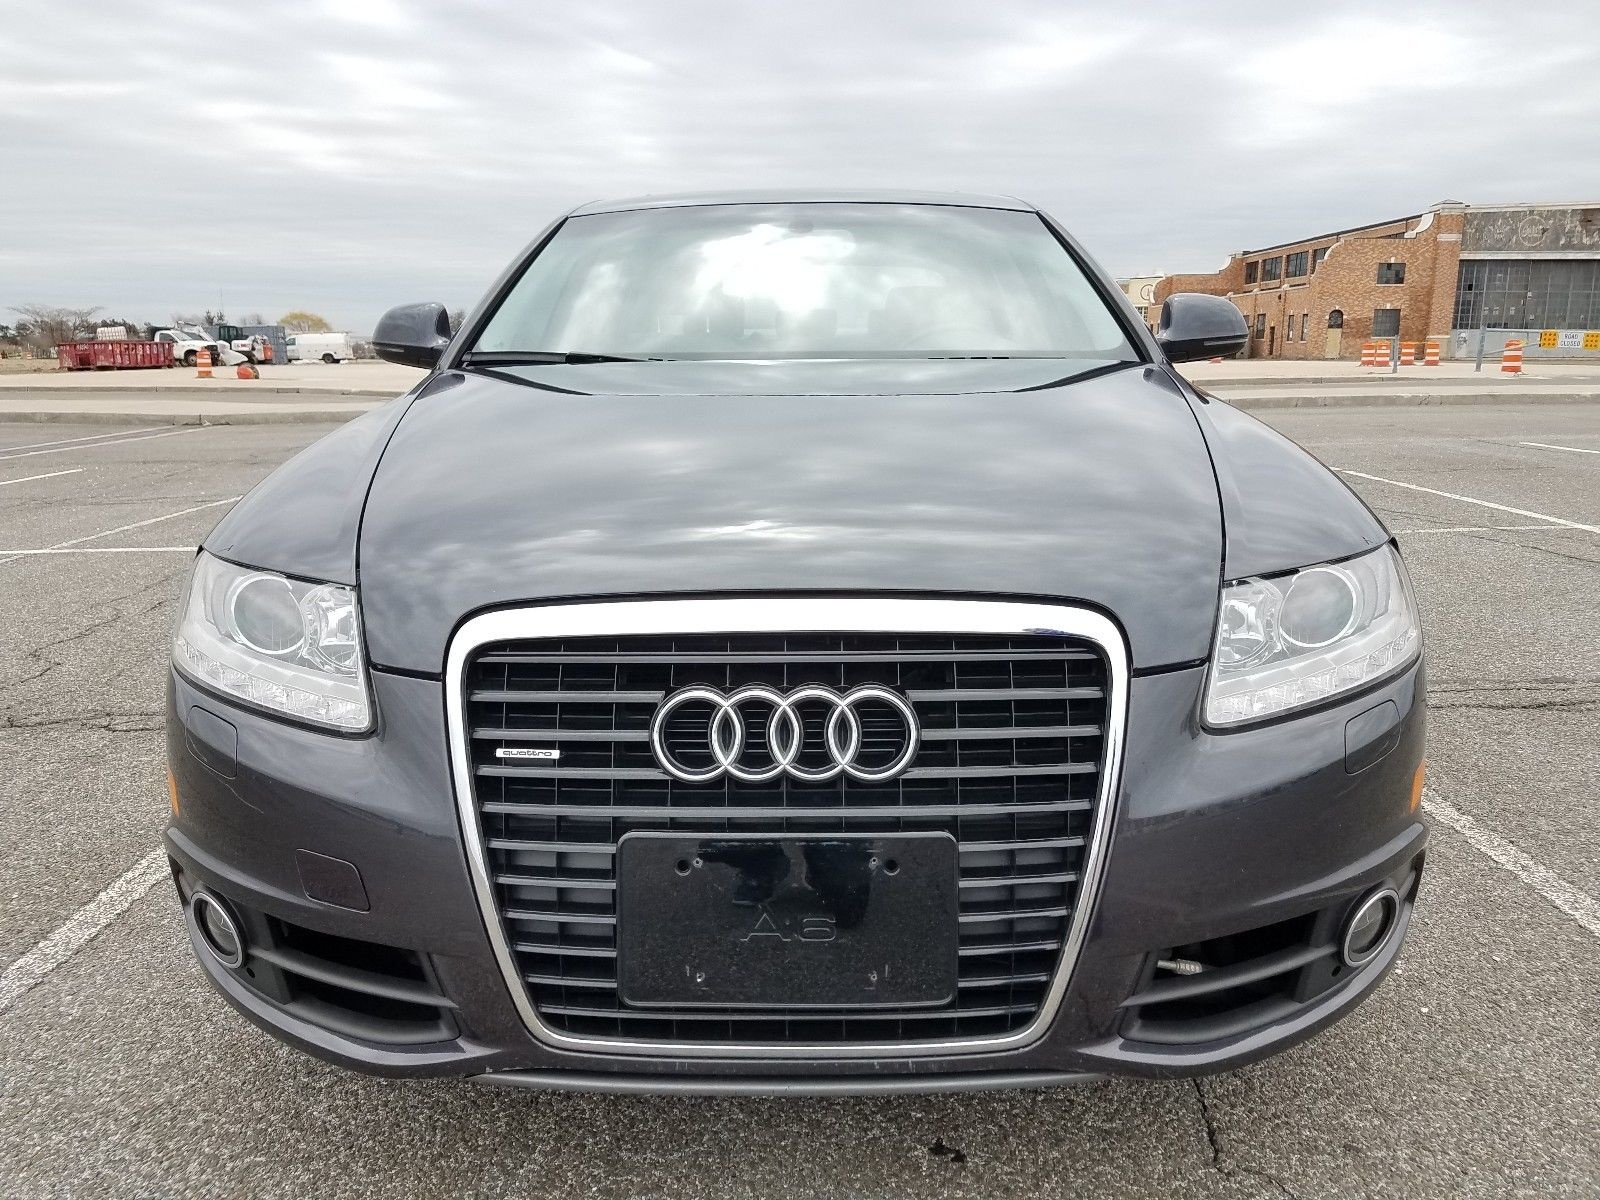 2011 Audi A6 Overview CarGurus